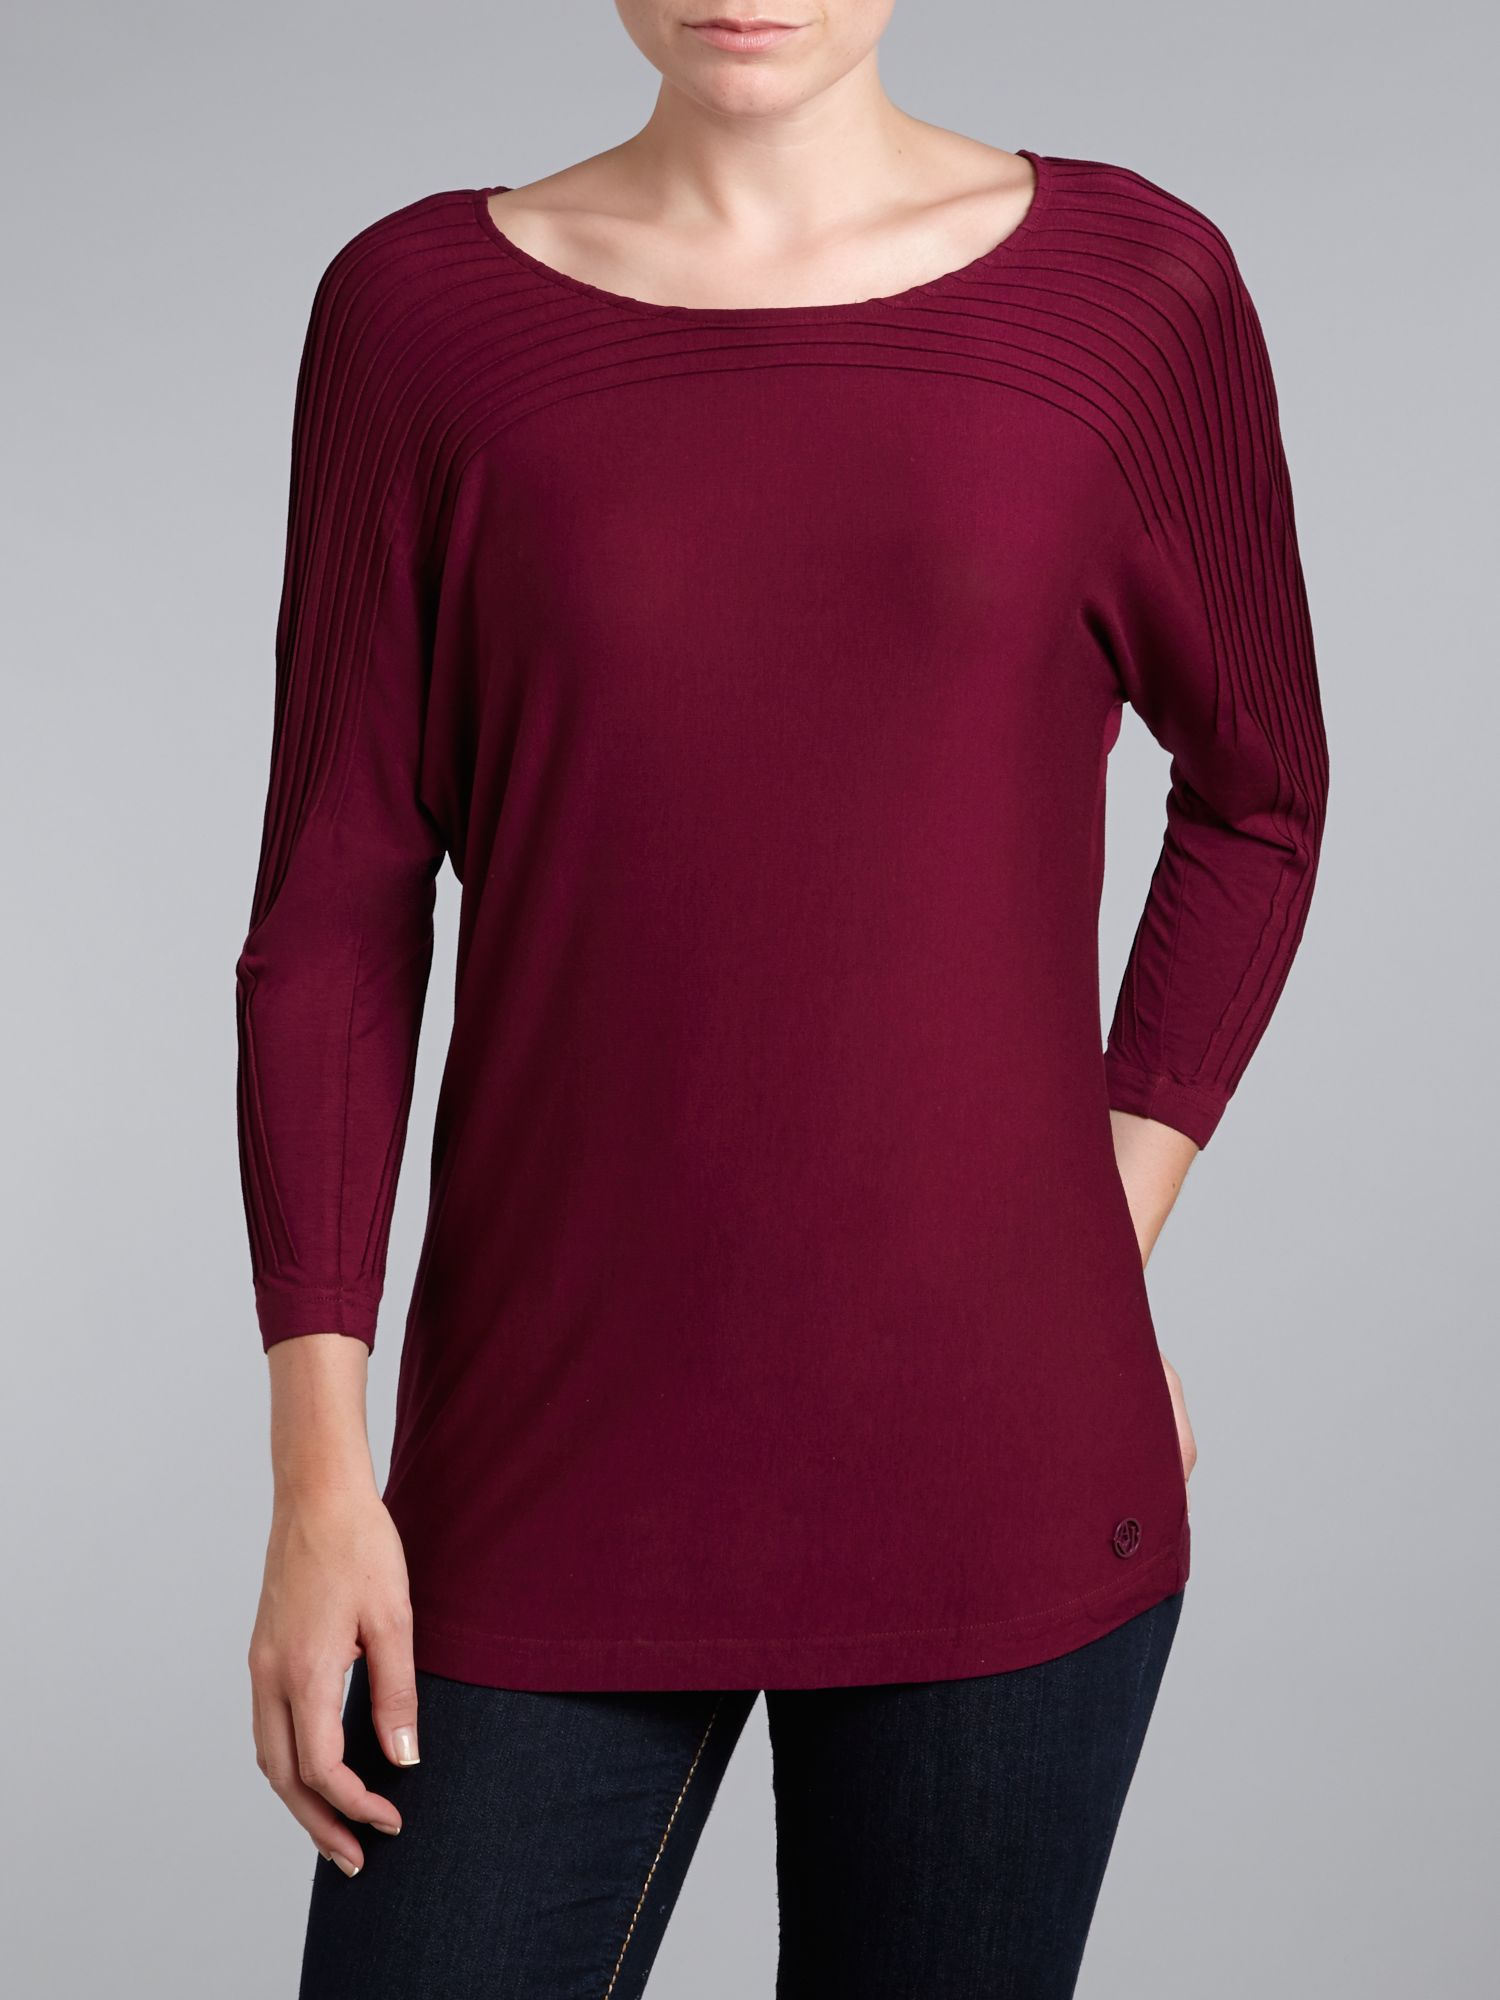 3/4 sleeve round neck jersey top